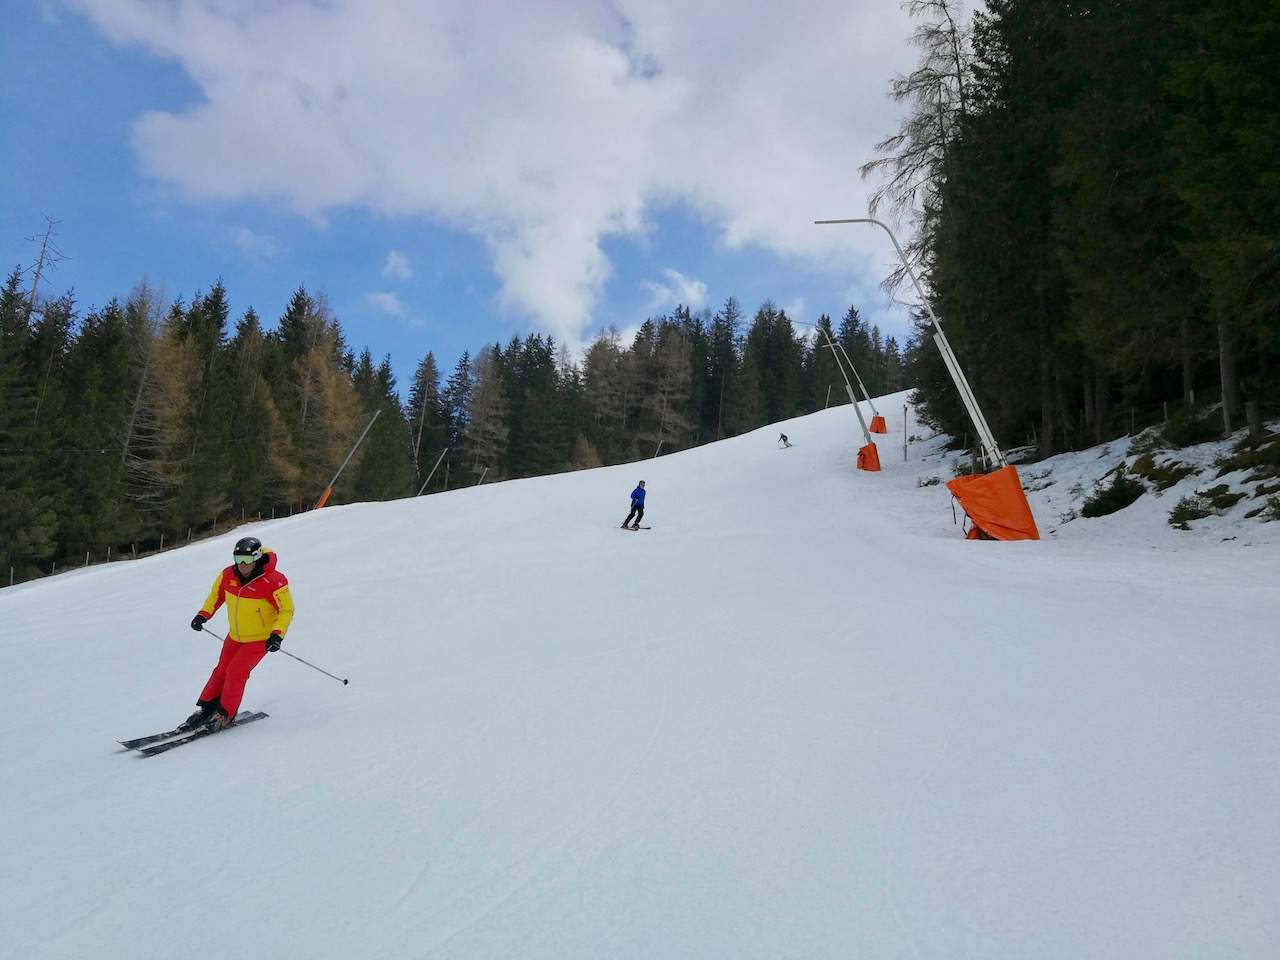 Skiing through the pine forests of Kaiserburg